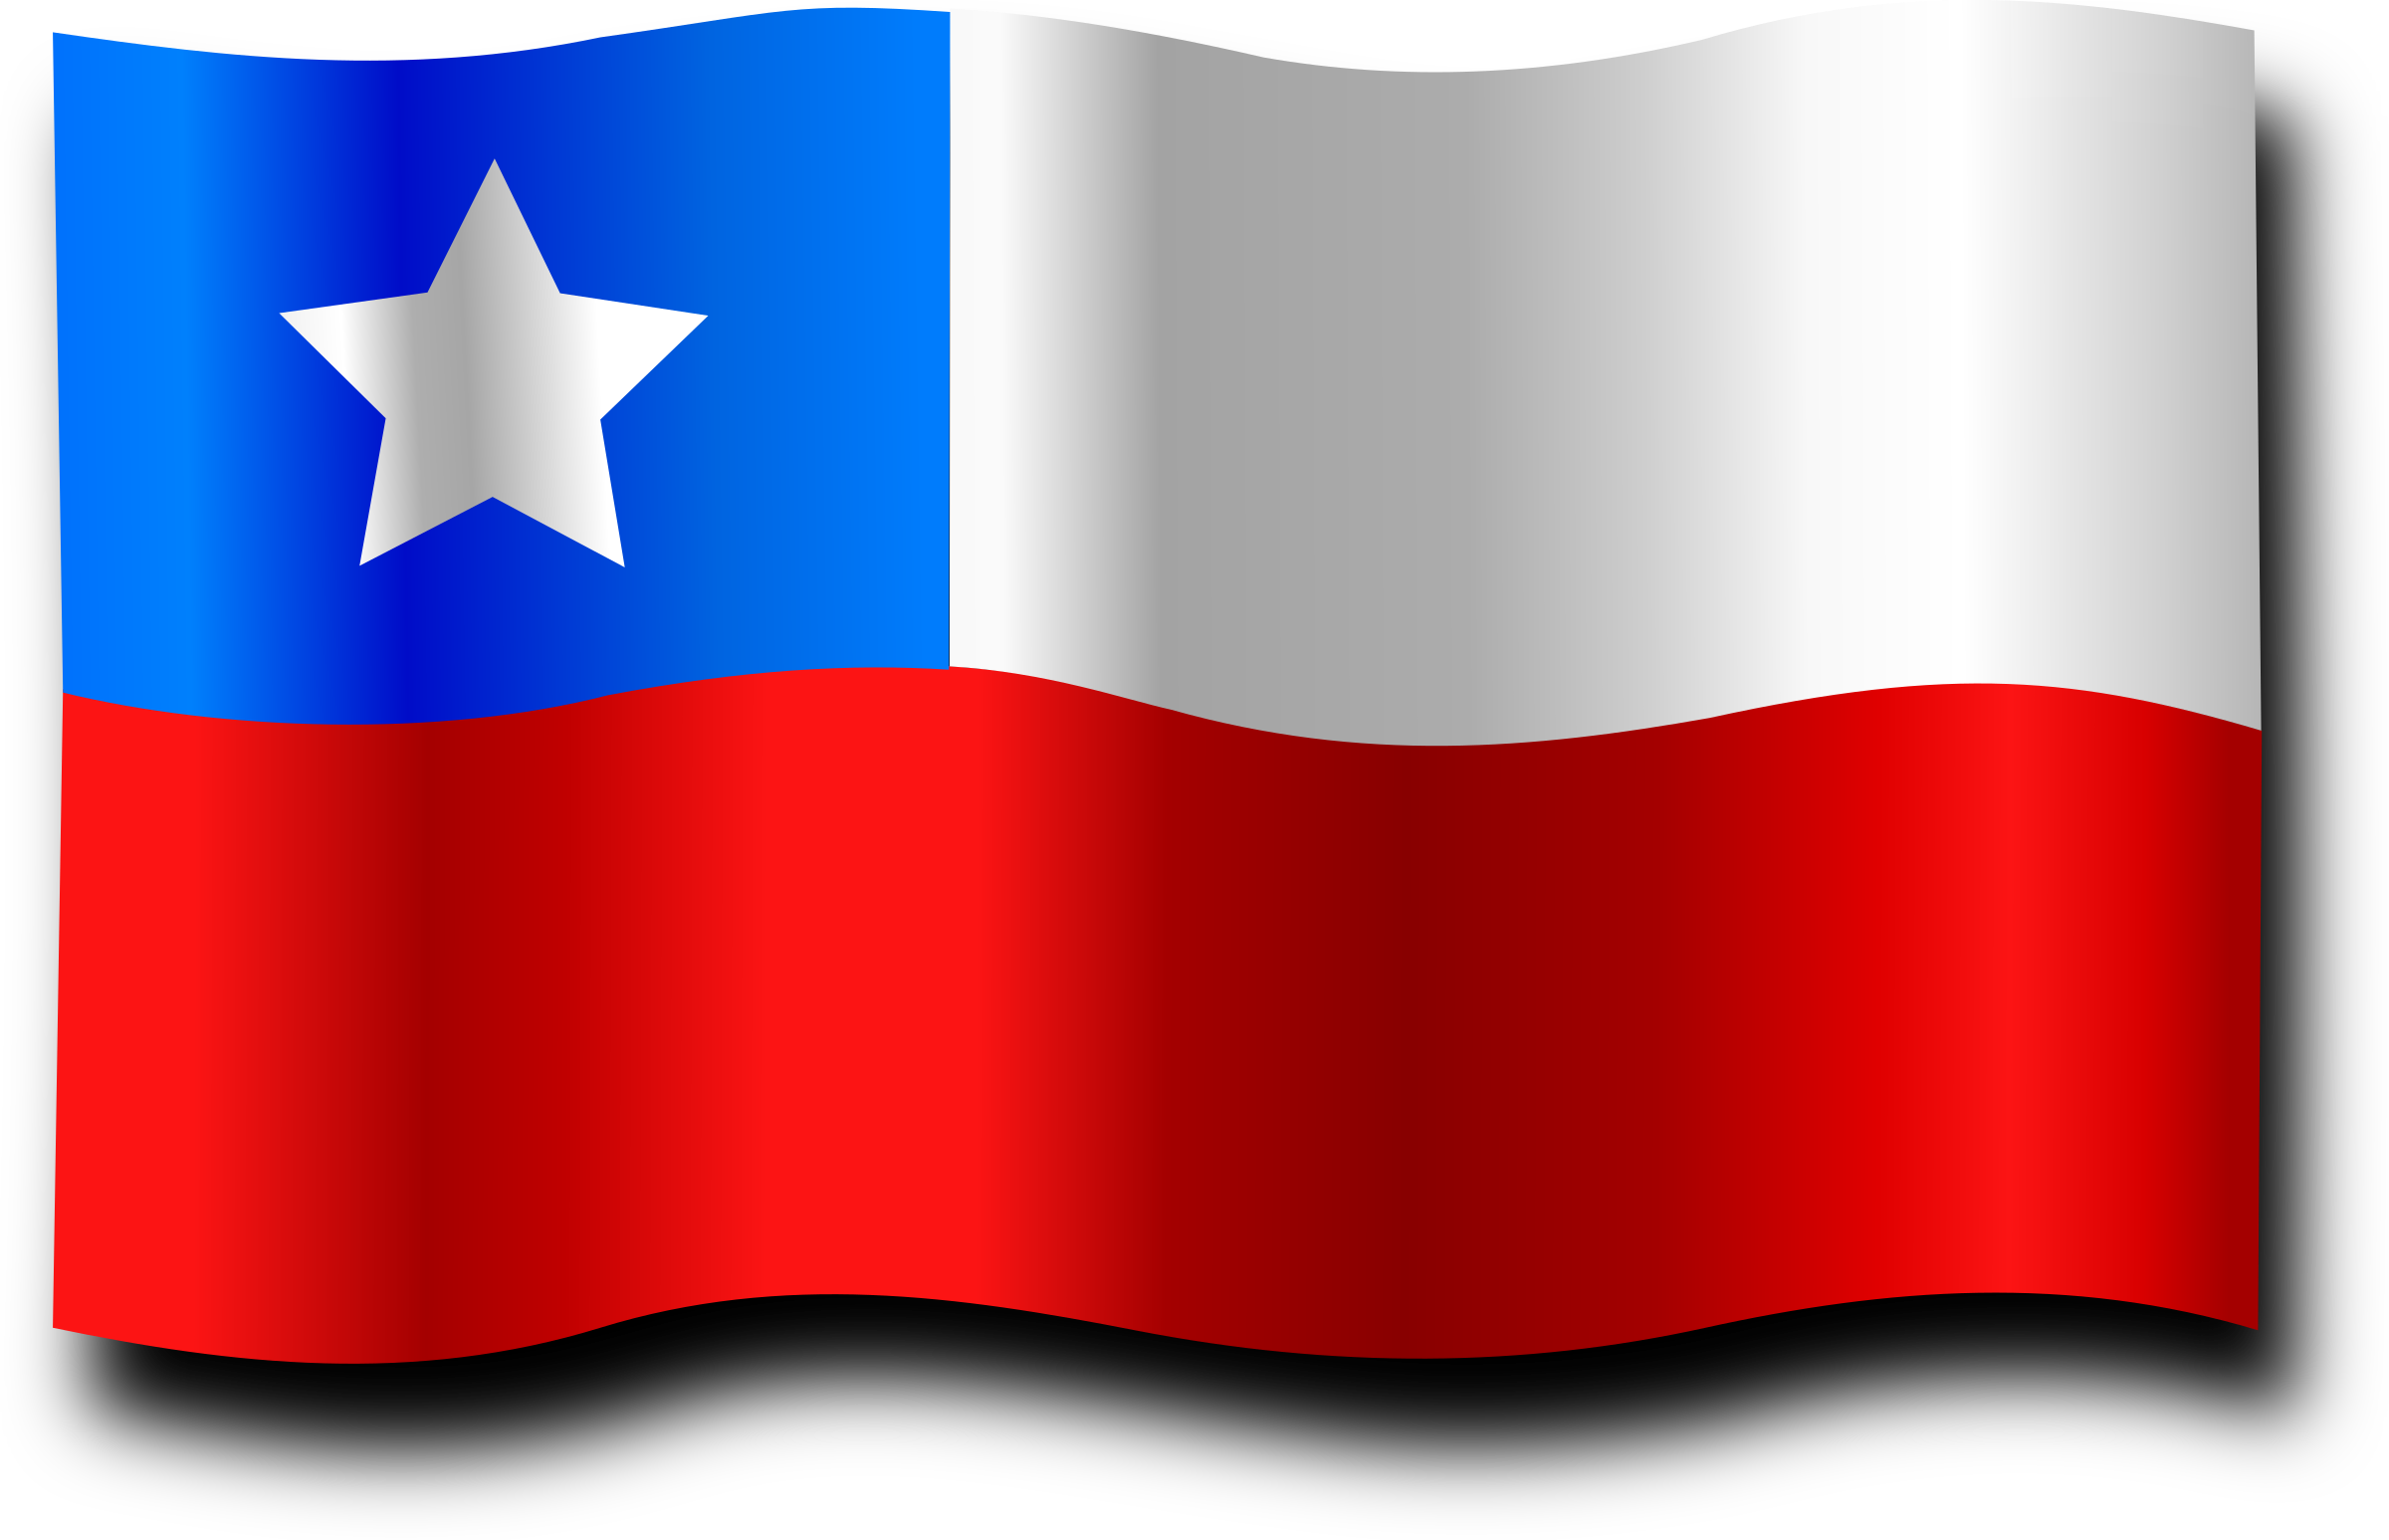 Chilean Flag 2 by Merlin2525